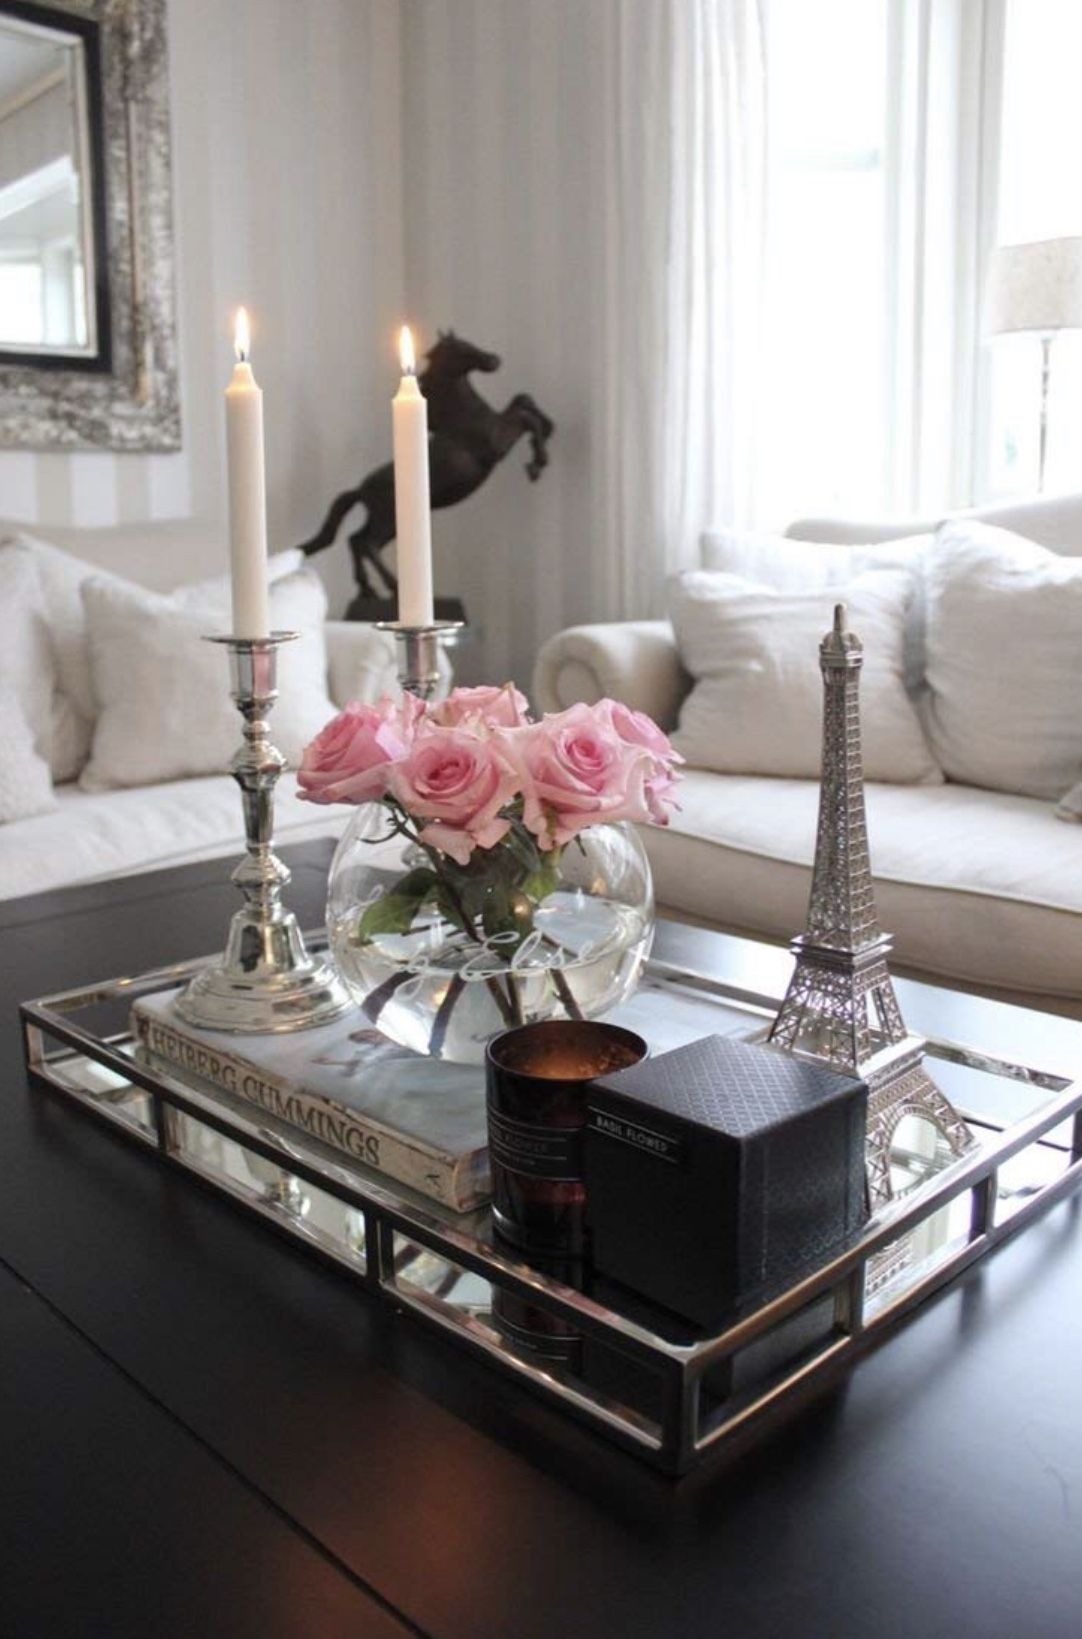 Pin By Olivia Duarte On Home Coffee Table Decor Tray First Apartment Decorating Tray Decor